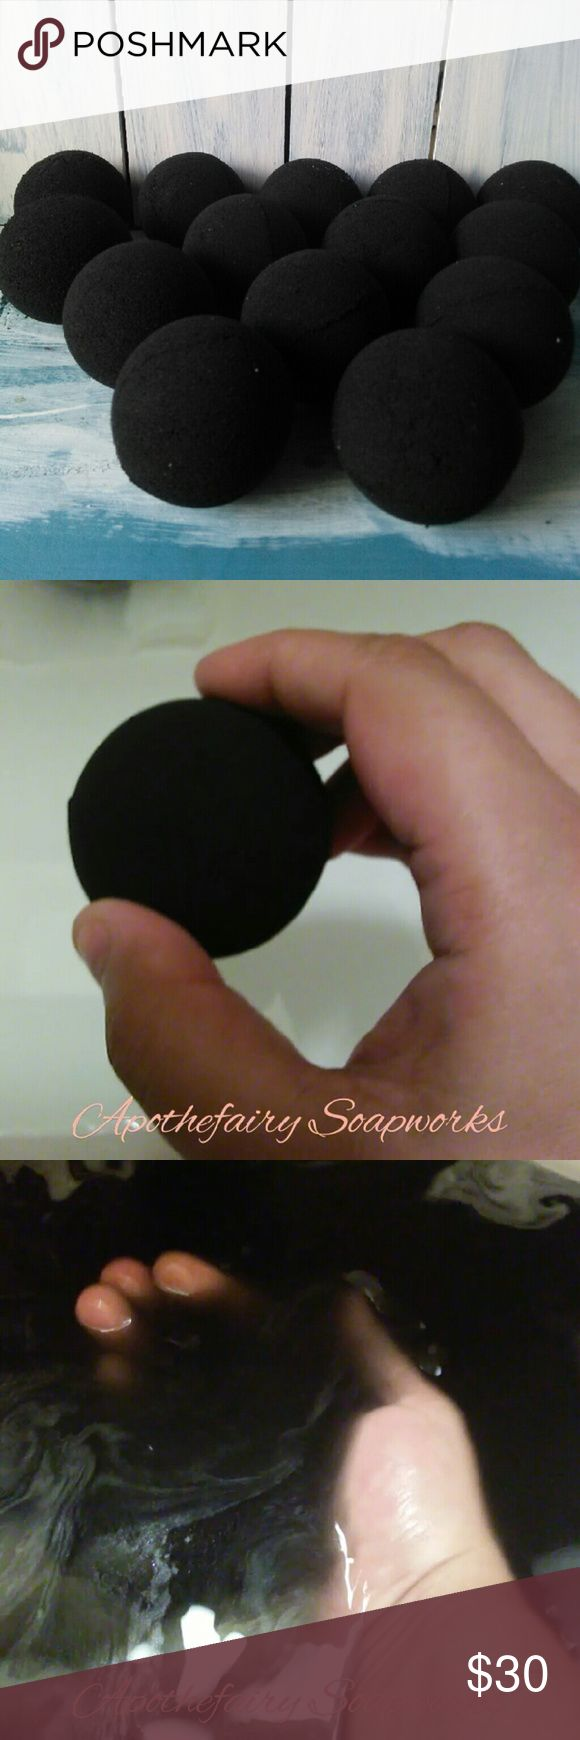 12 Goth Blacker than Black Love Spell Bath Bombs 12 medium sized bath bombs approximately 2 inches wide and 2 inches tall each one weighs approximately 2 ounces or a little bit more. scented in Victoria Secret Love spell dupe.?  These bath bombs are dark in color and will leave you water black according to my testing in the sink. You may need to use more than one to get a dark black.?  These Bath Bombs did not stain my skin or my sink. The ingredients include baking soda citric acid powdered…